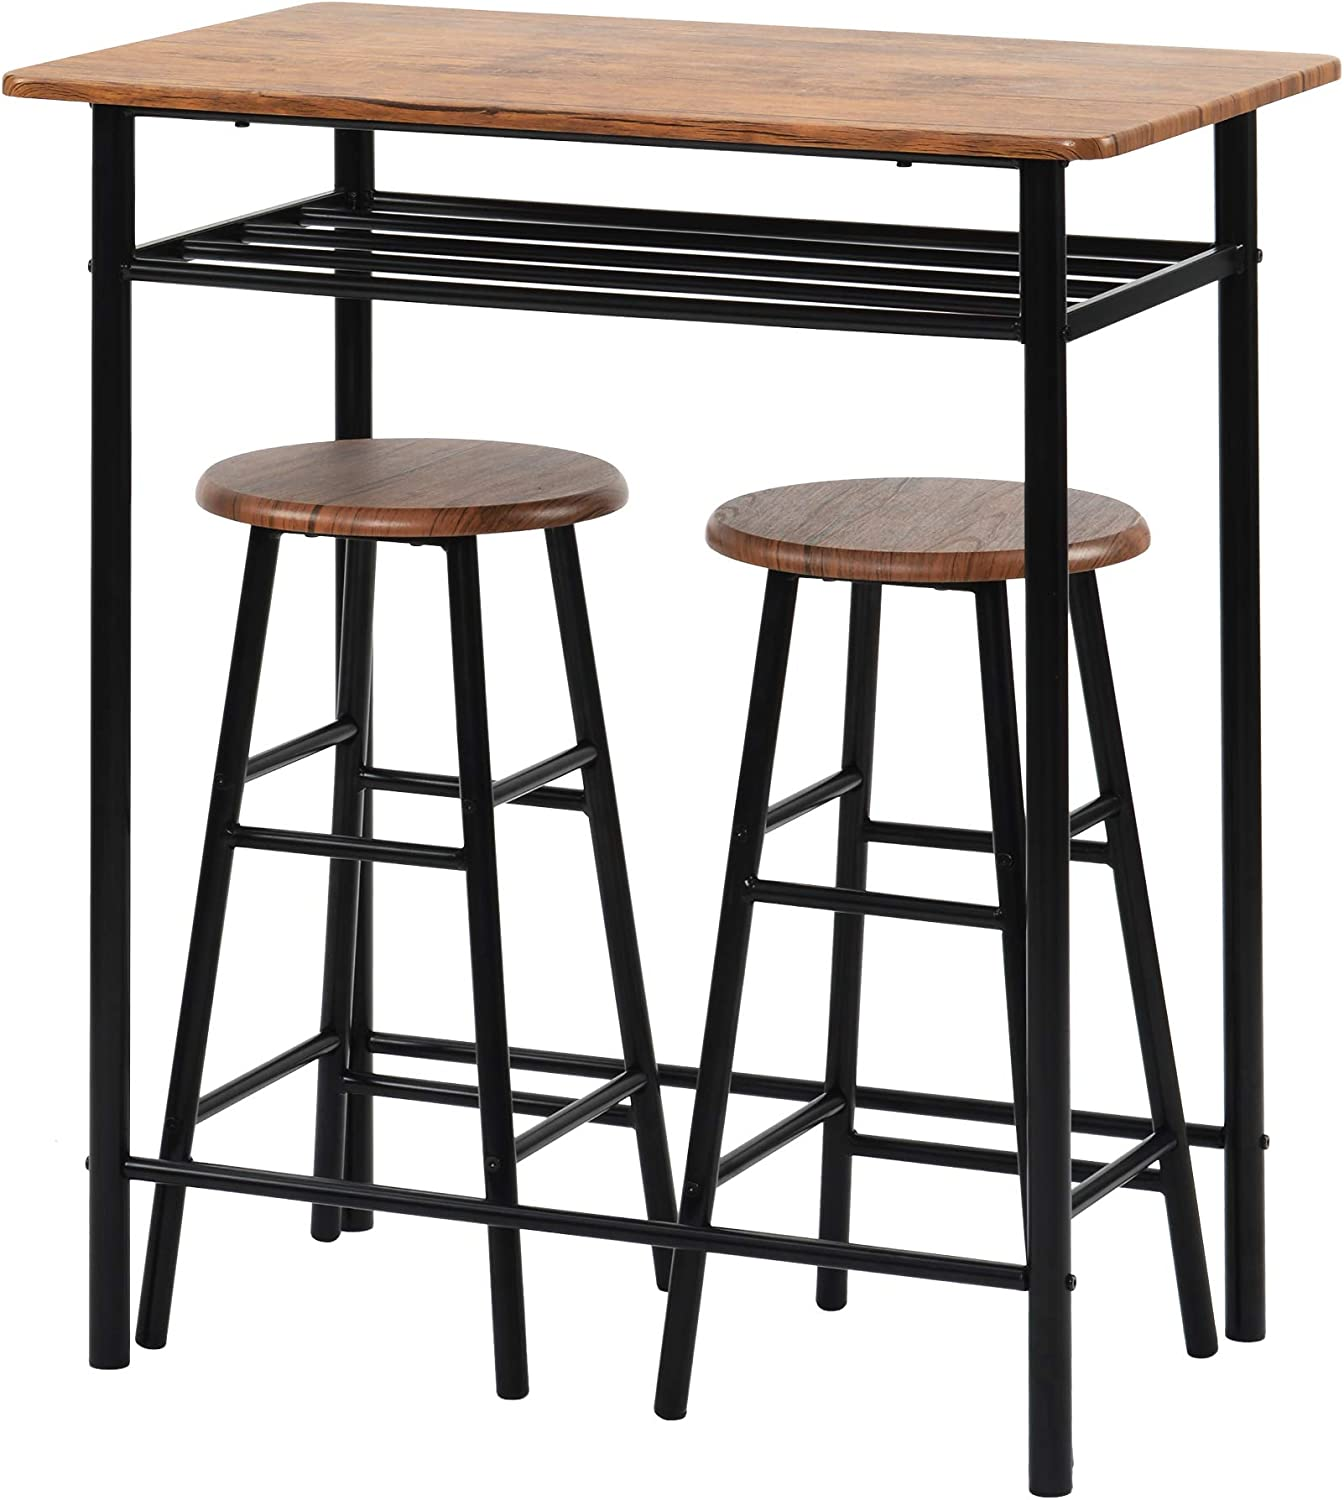 Generies 3 Pieces Bar Table Set Modern Pub Table And Chairs Dining Set Kitchen Counter Height Dining Table Set With 2 Bar Stools Built In Storage Layer Easy Assemble Brown Amazon Co Uk Kitchen